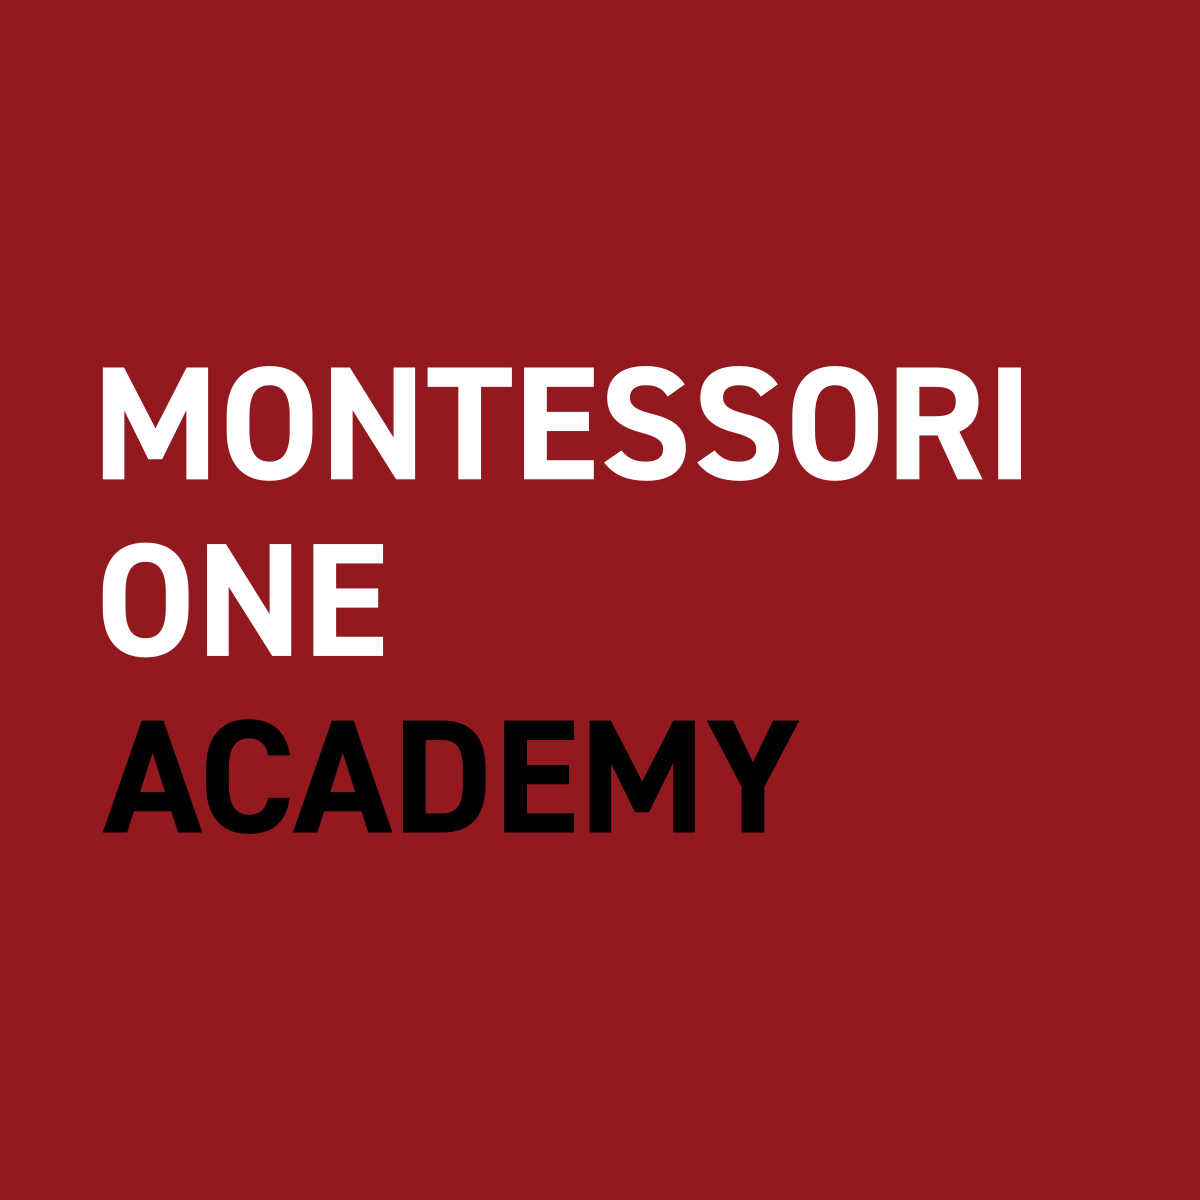 Montessori ONE Academy Logo